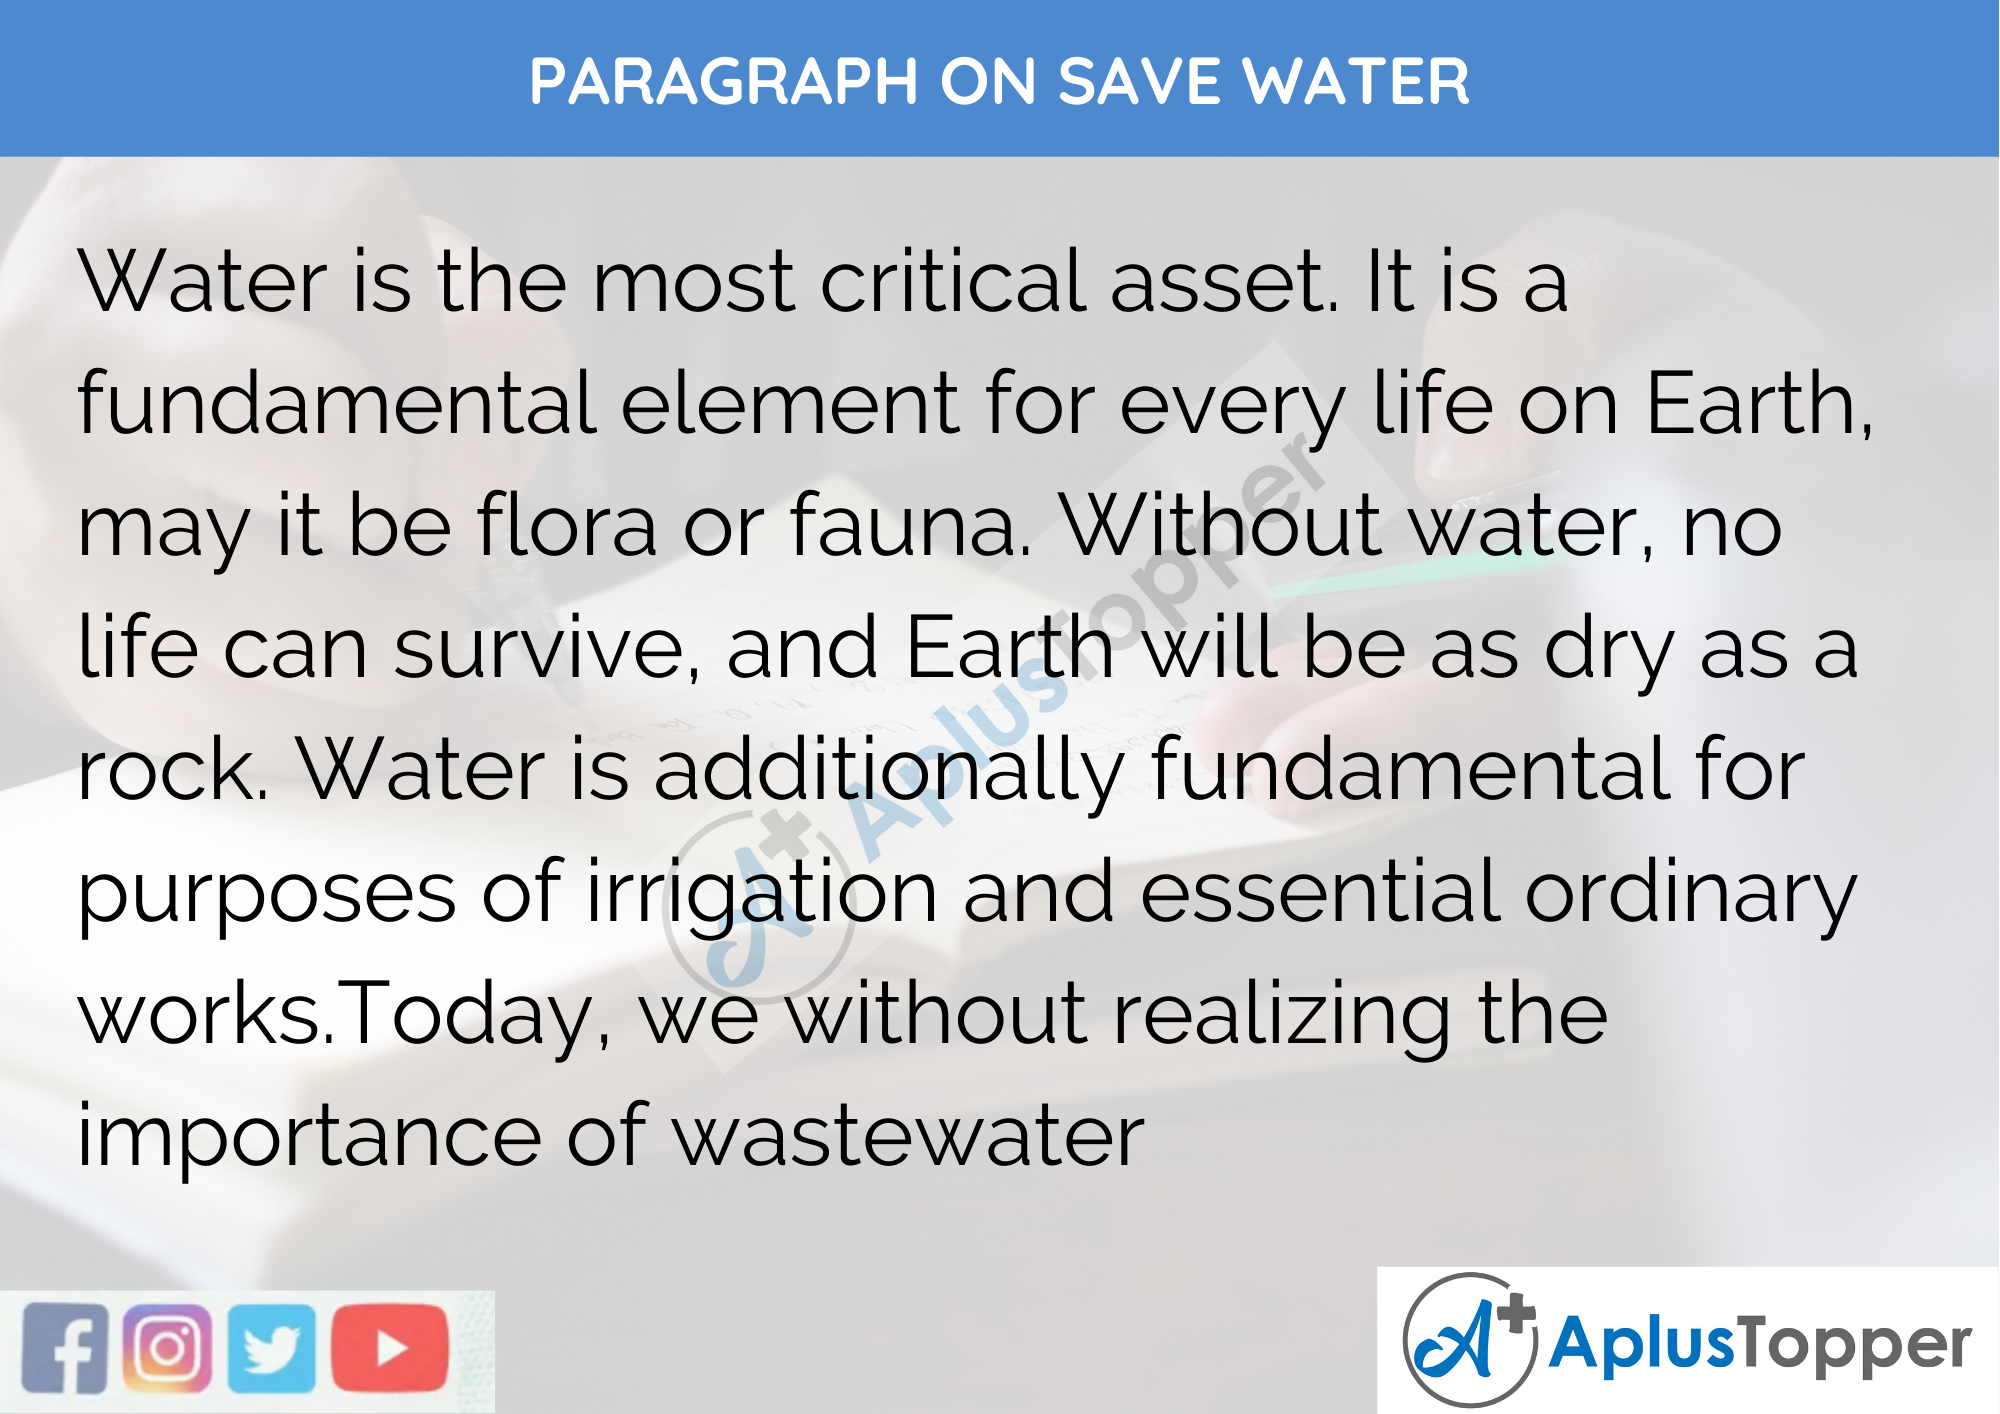 Paragraph On Save Water - 100 Words for Class 1,2,3 Kids